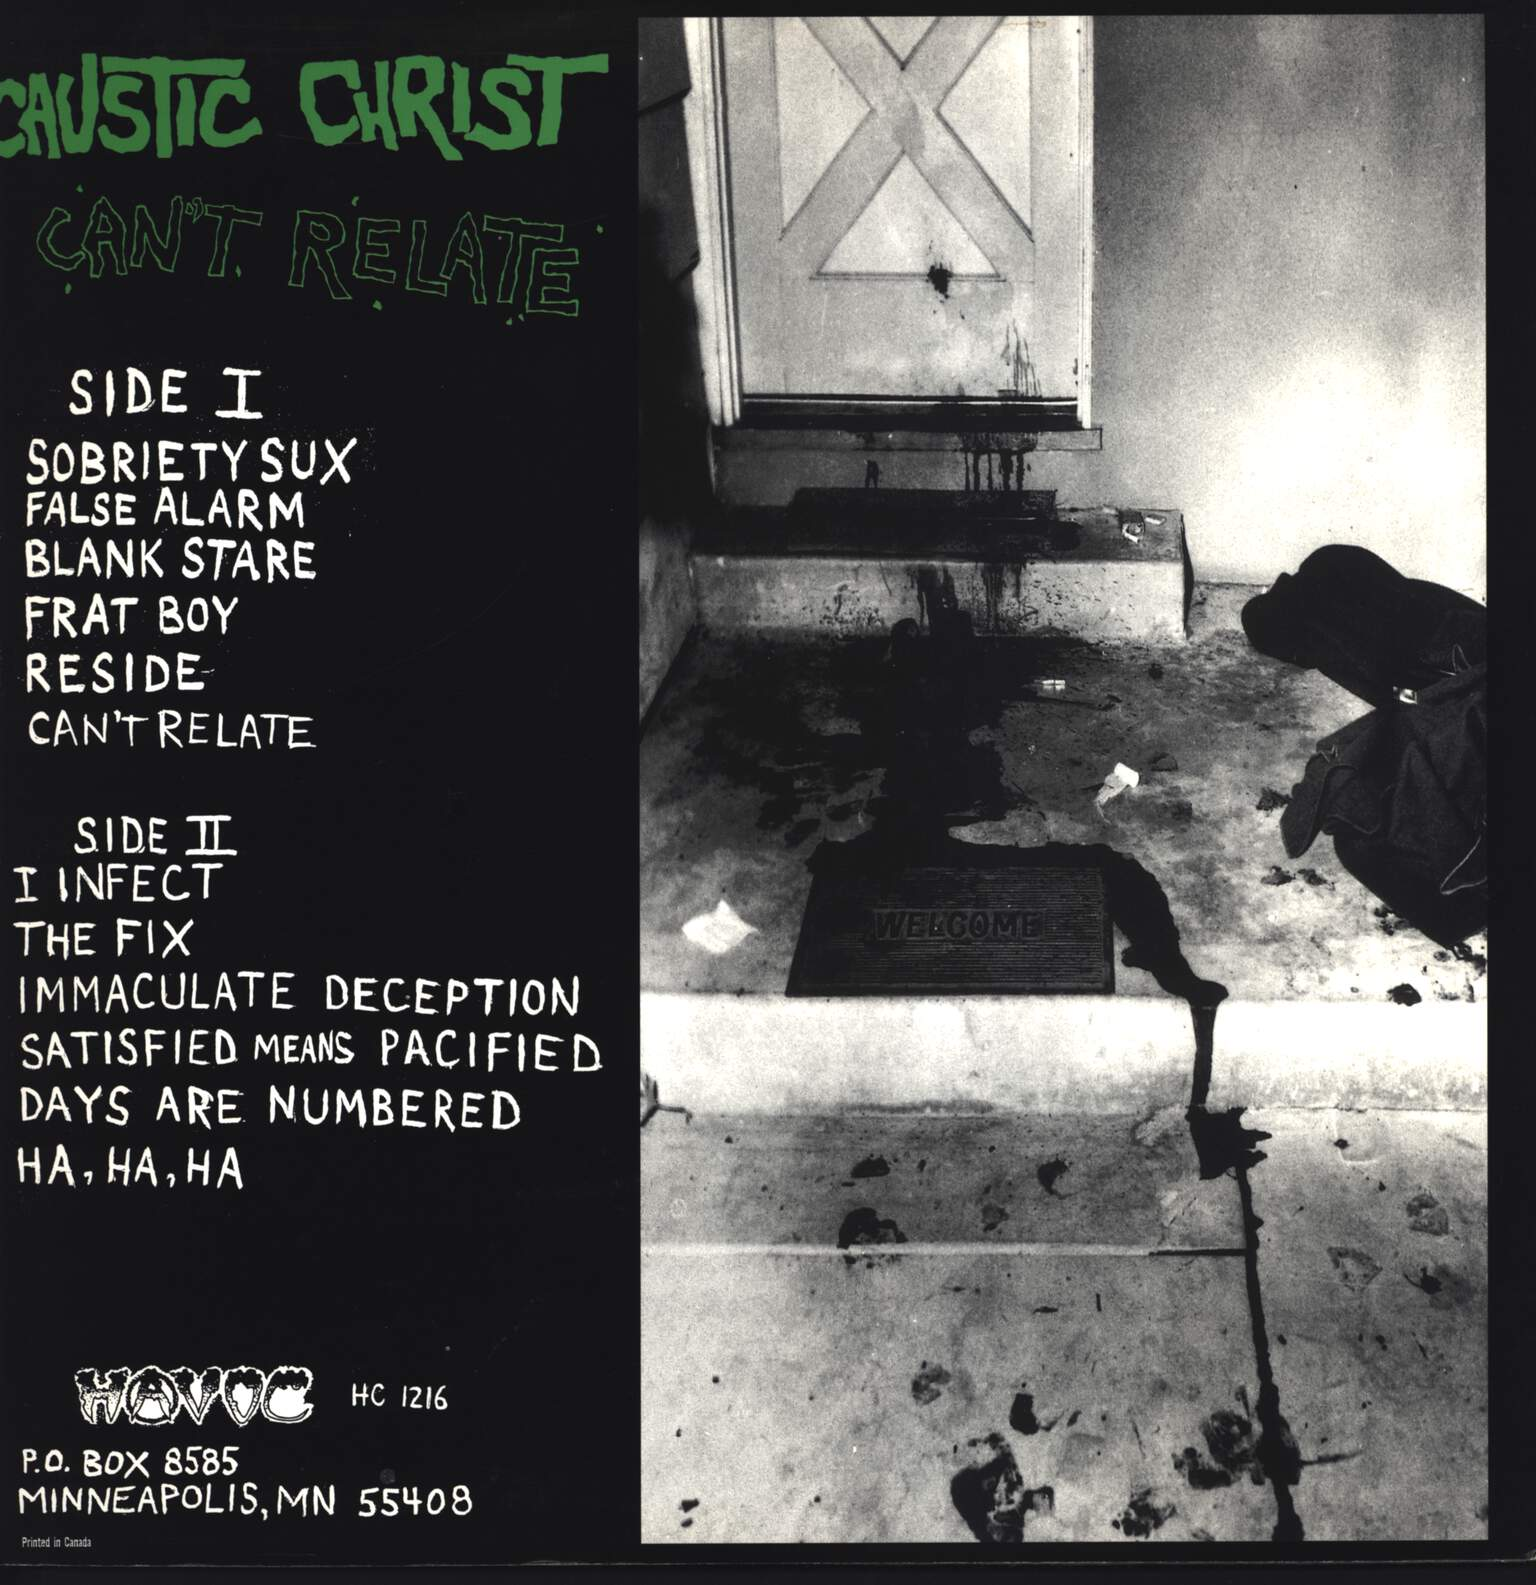 "Caustic Christ: Can't Relate, 12"" Maxi Single (Vinyl)"